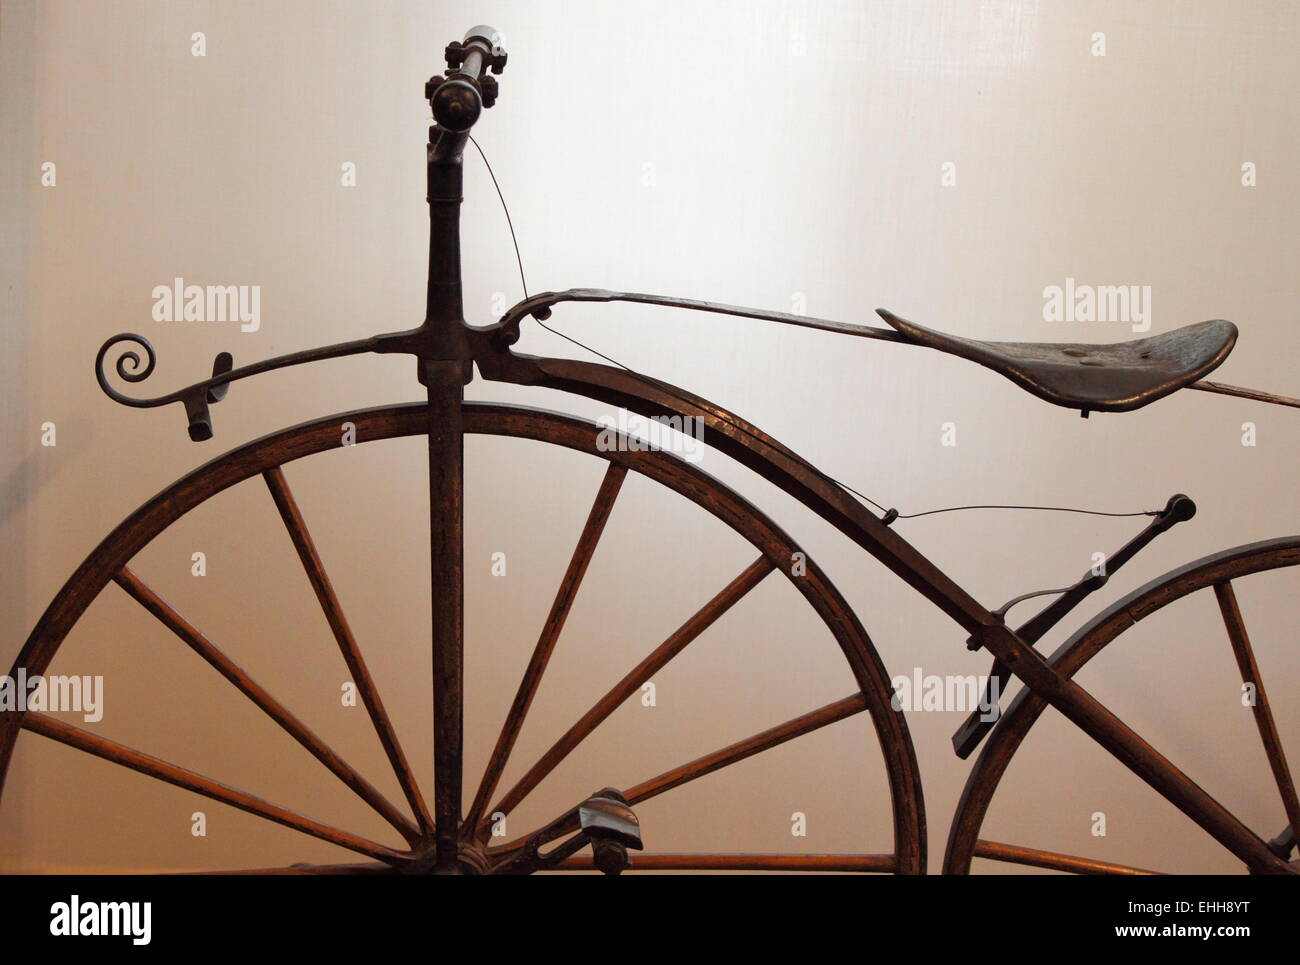 Old times bicycle - Stock Image